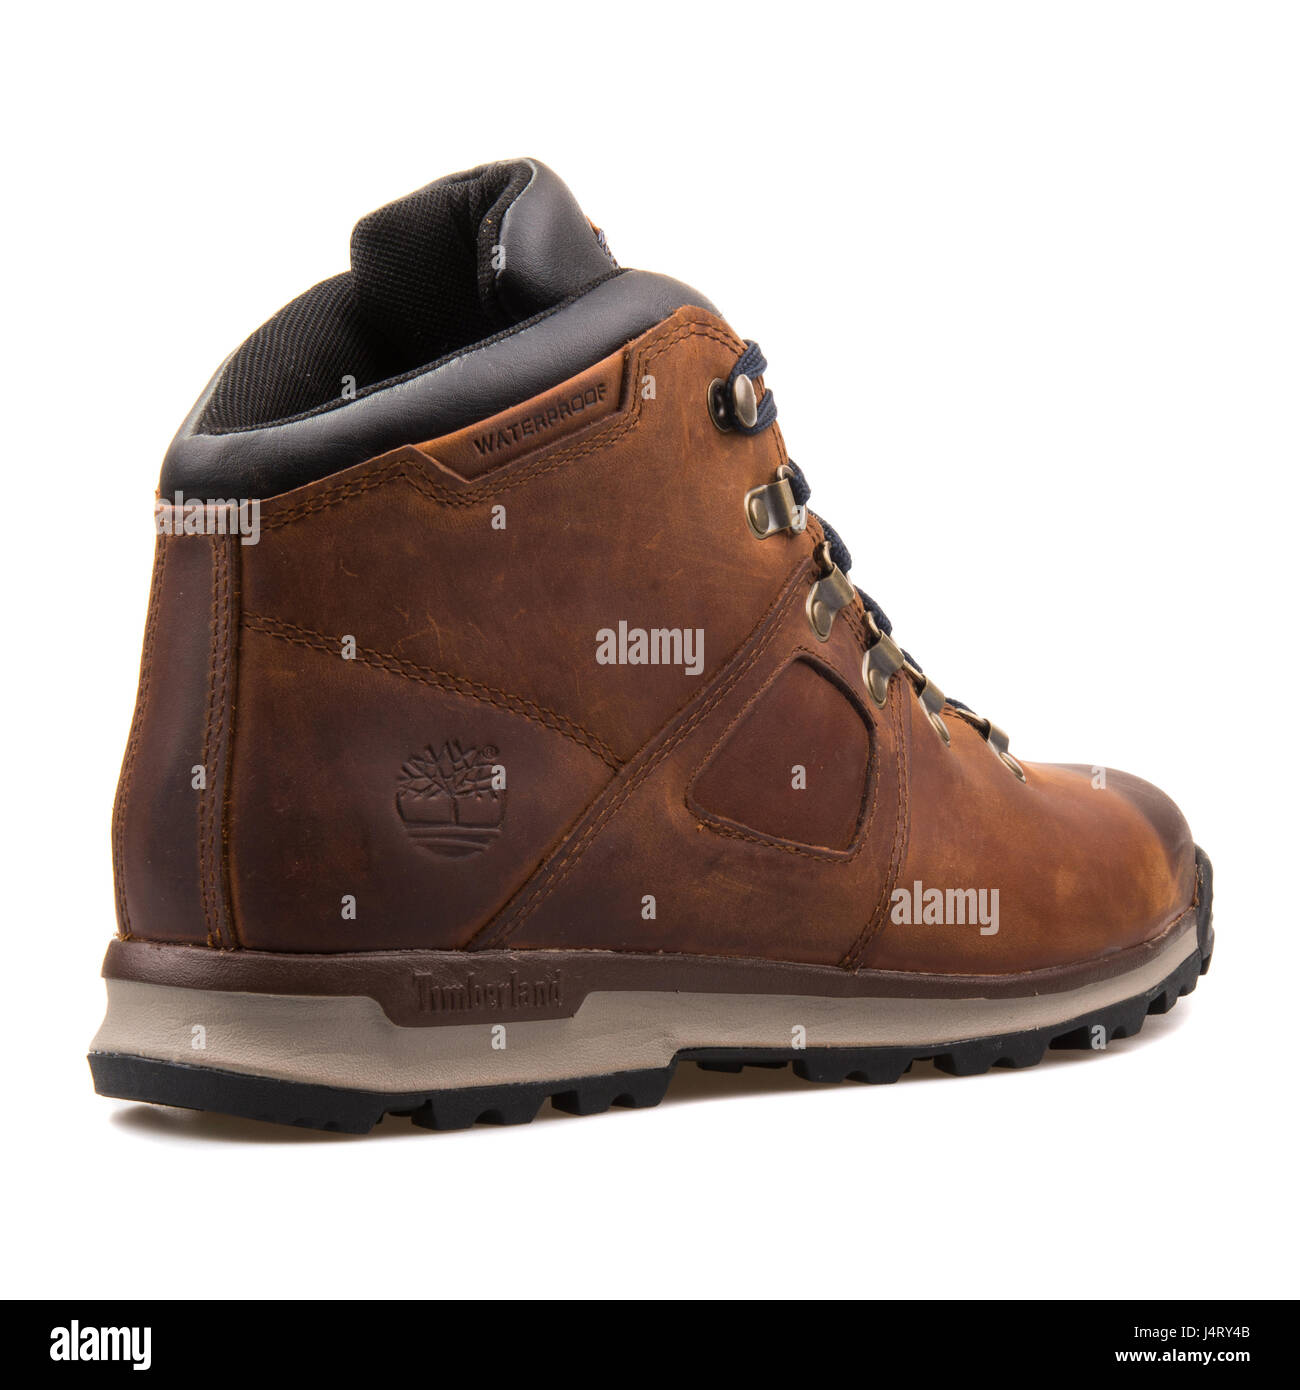 Timberland Earthkeepers Ekscramble GT Scramble Midlthr Brown Boots - 2210R Stock Photo